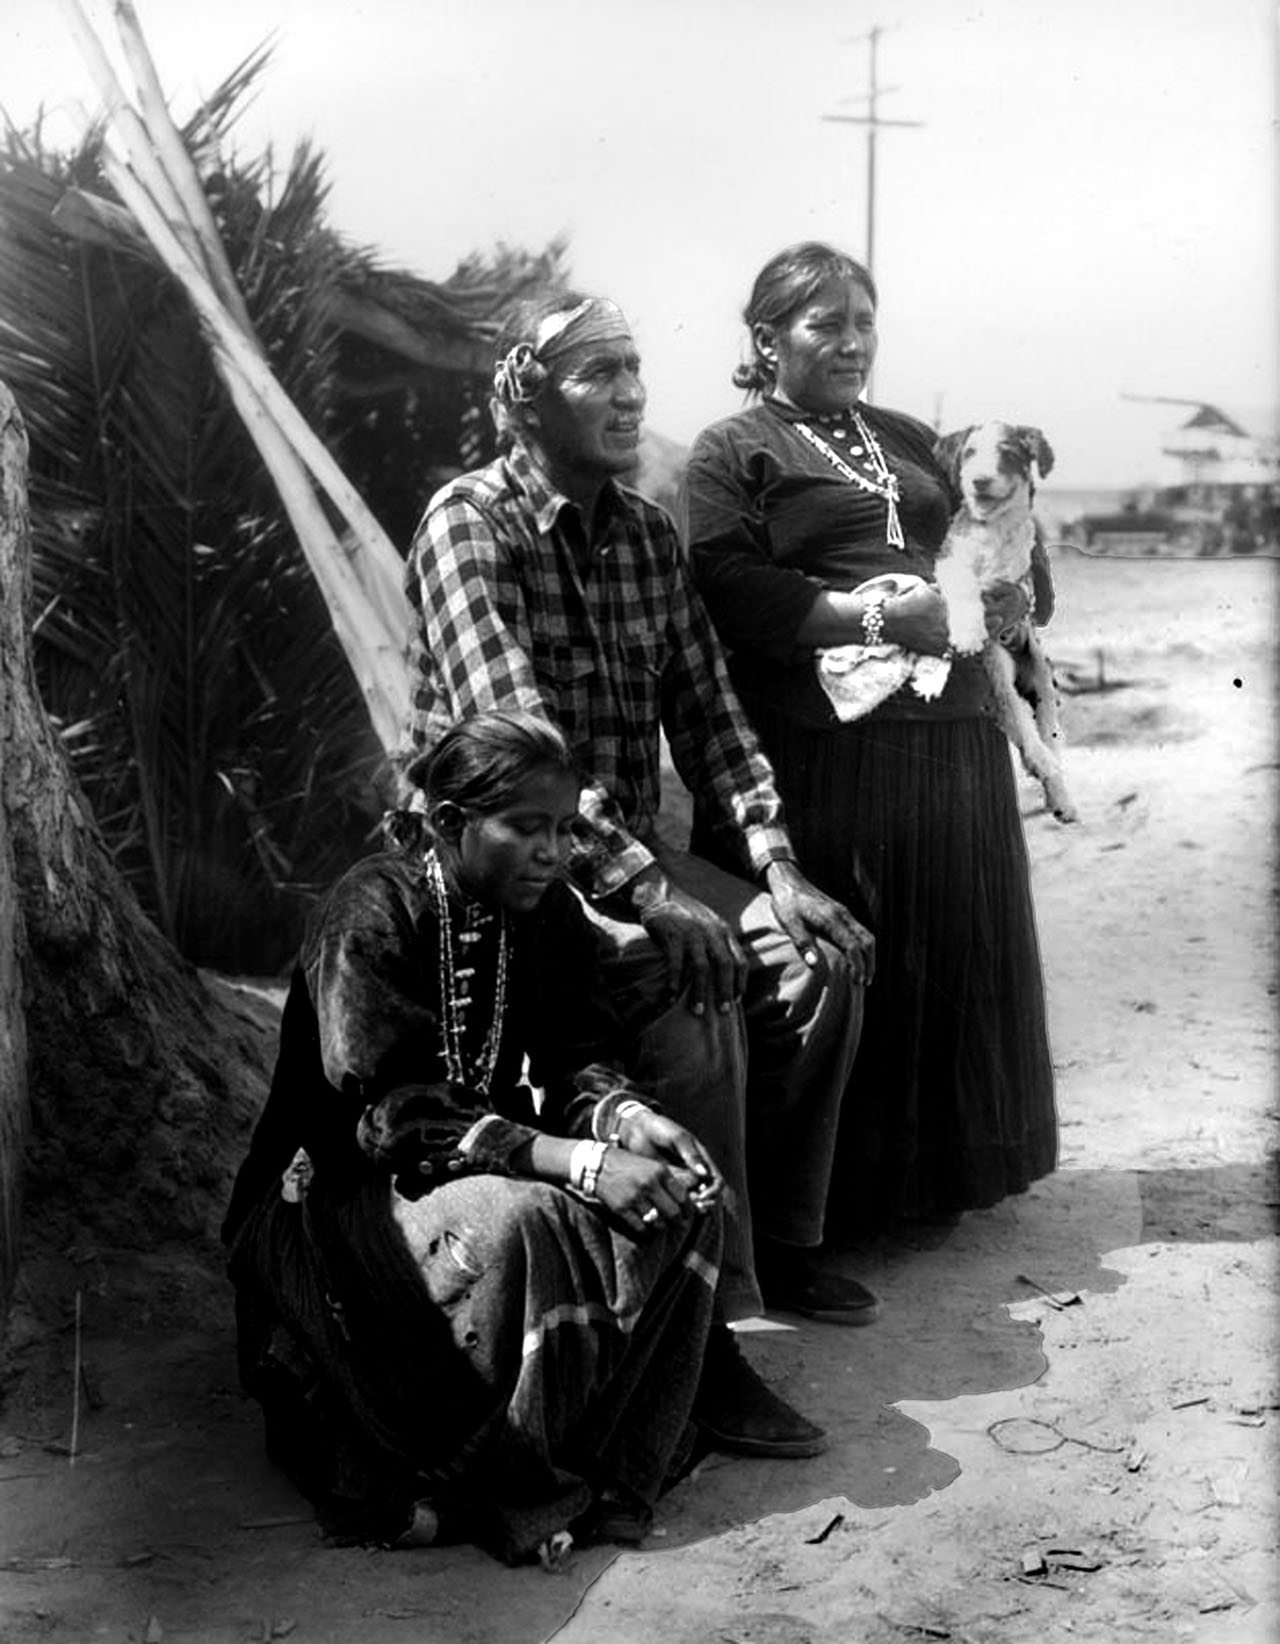 Navajos. The Bureau of Indian Affairs sent Hopi and Navajo families to Long Beach to be part of the exhibition. Photograph courtesy of Security Pacific National Bank Collection, Los Angeles Public Library